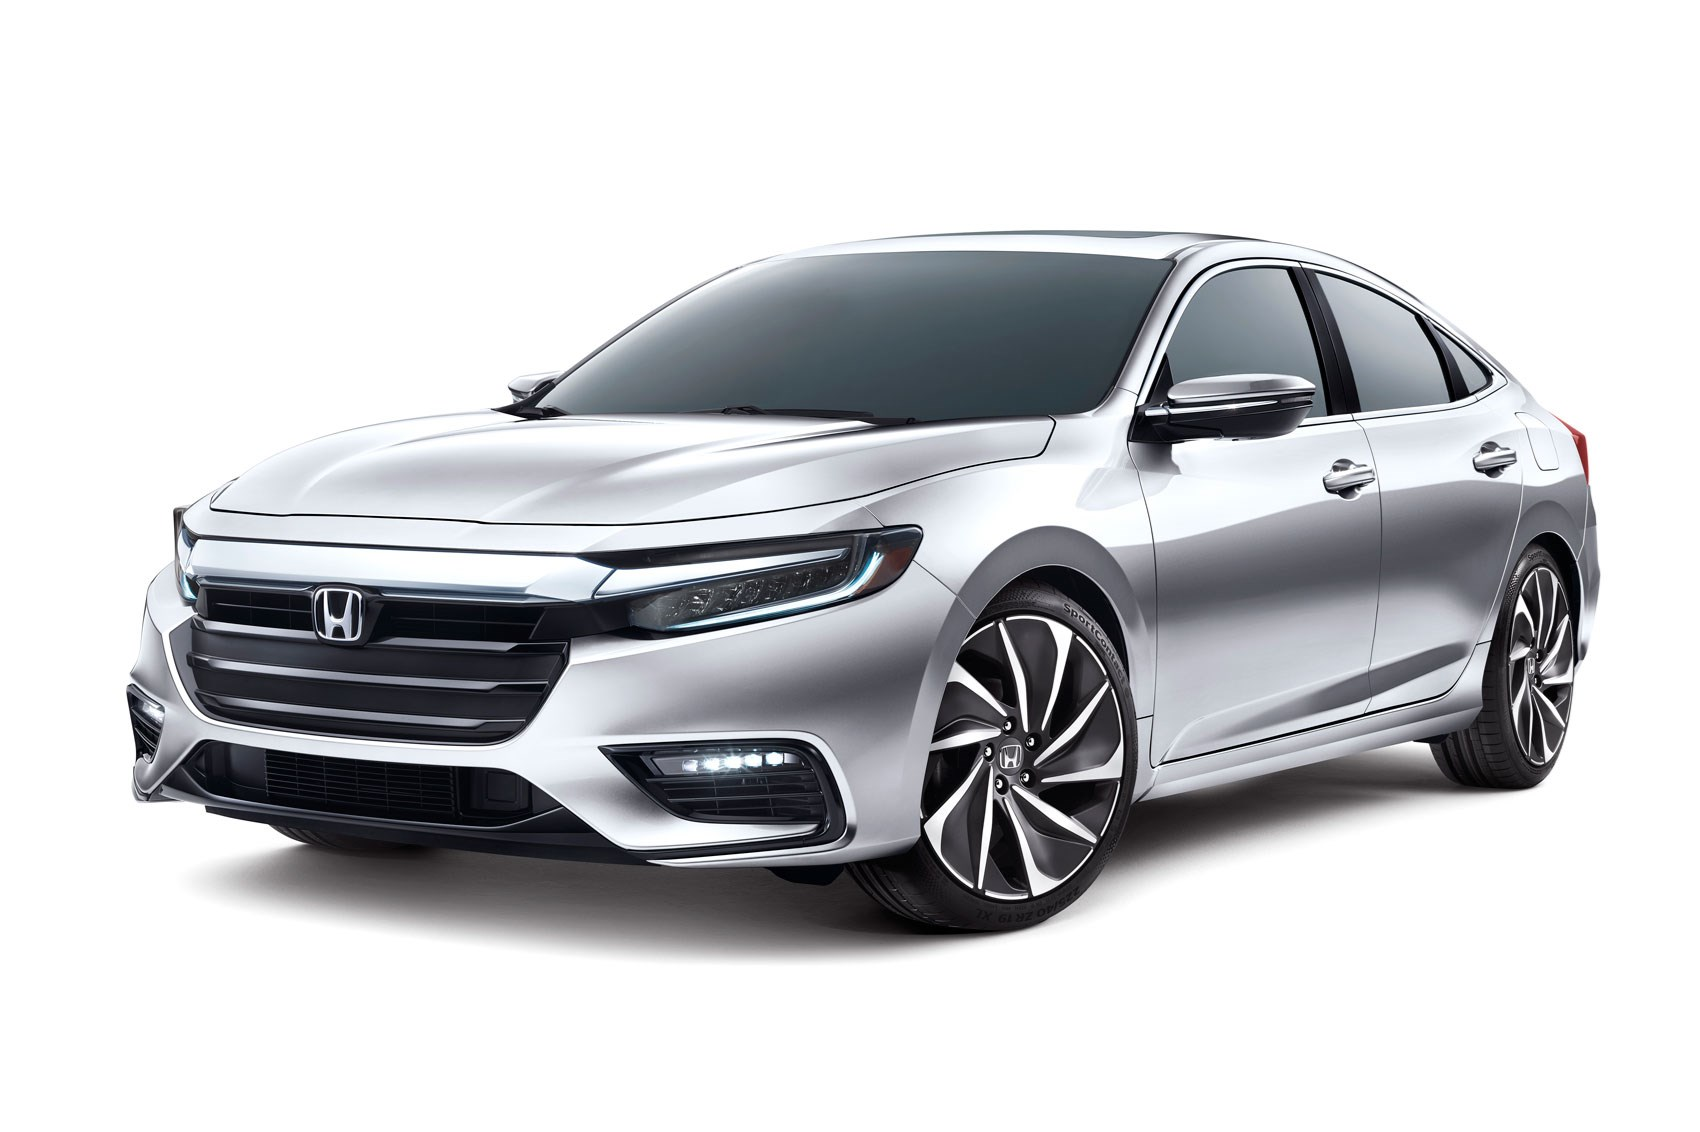 new honda insight sleek hybrid prototype 39 s specs detailed at naias 2018 by car magazine. Black Bedroom Furniture Sets. Home Design Ideas